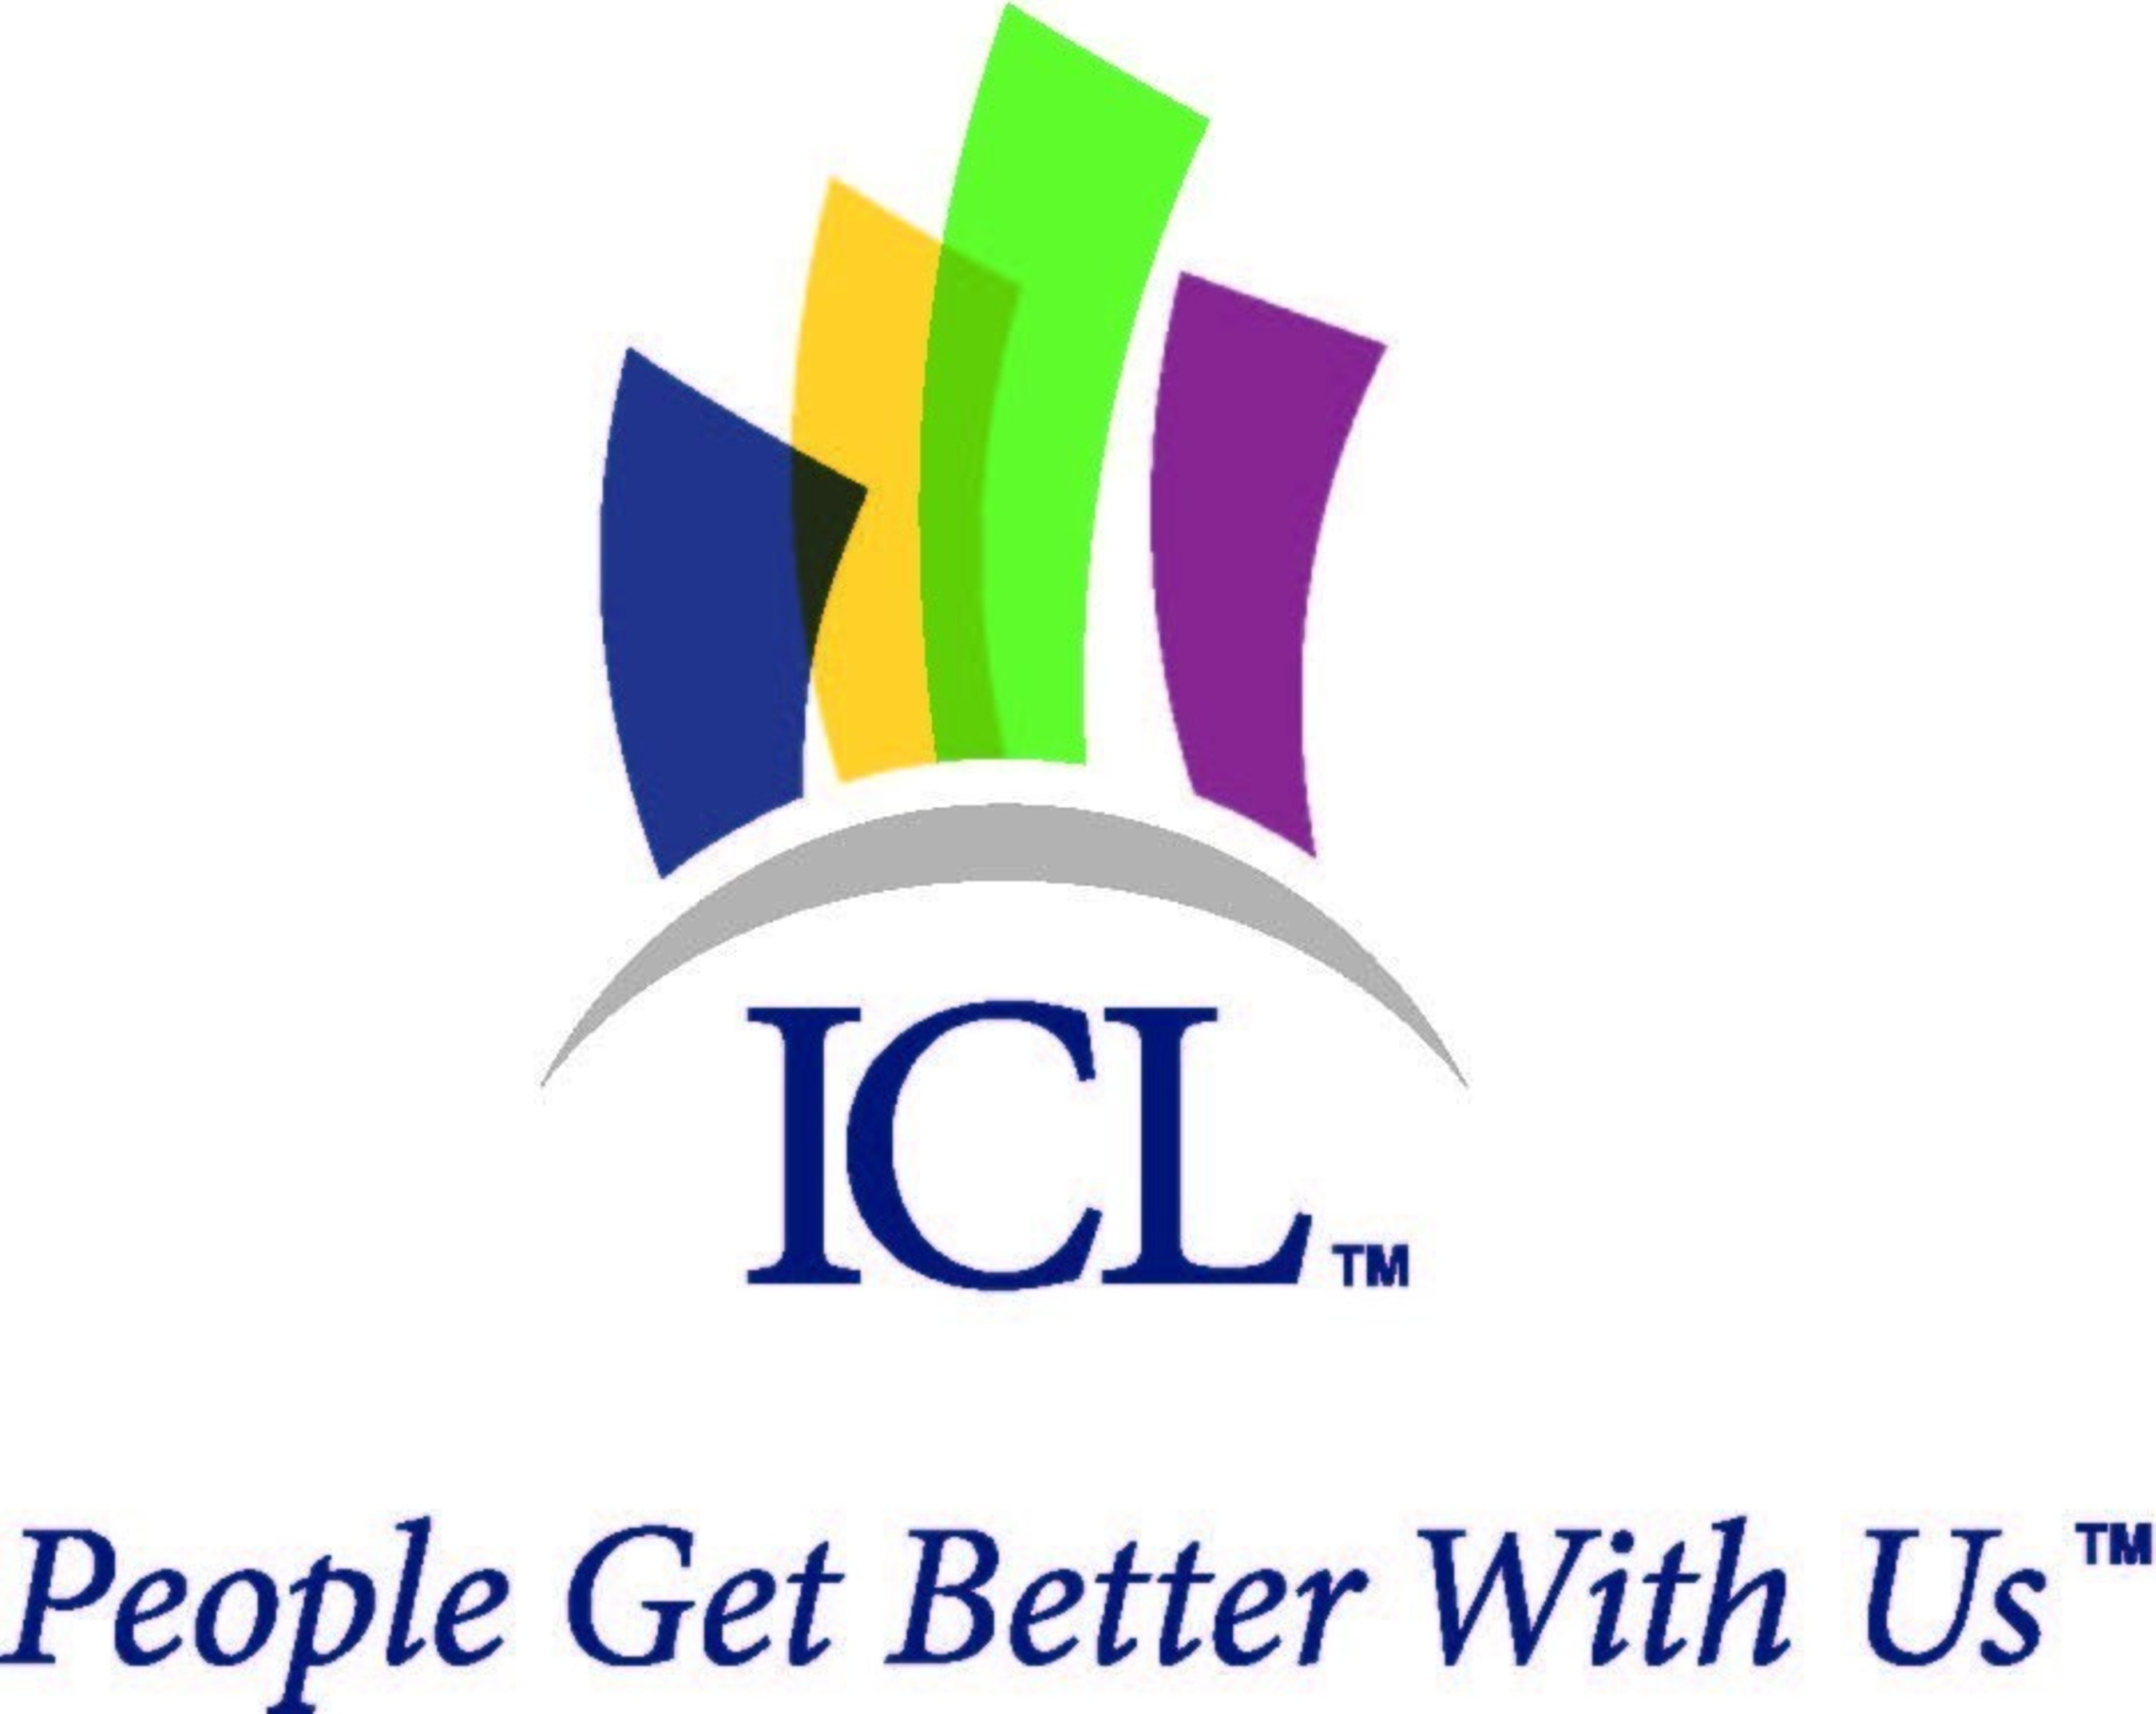 ICL is an award-winning not-for-profit service agency that provides counseling, rehabilitation, housing and other support services for almost 10,000 adults and children diagnosed with serious mental illness, substance abuse, or intellectual or developmental disabilities in New York City and Montgomery County, Pennsylvania. ICL continues to expand services to underserved populations by devising new approaches using the latest research, conducting ongoing quality reviews of the delivery and impact of services, and revising strategies to offer more effective and cost-efficient care. For more information, visit www.ICLinc.org.